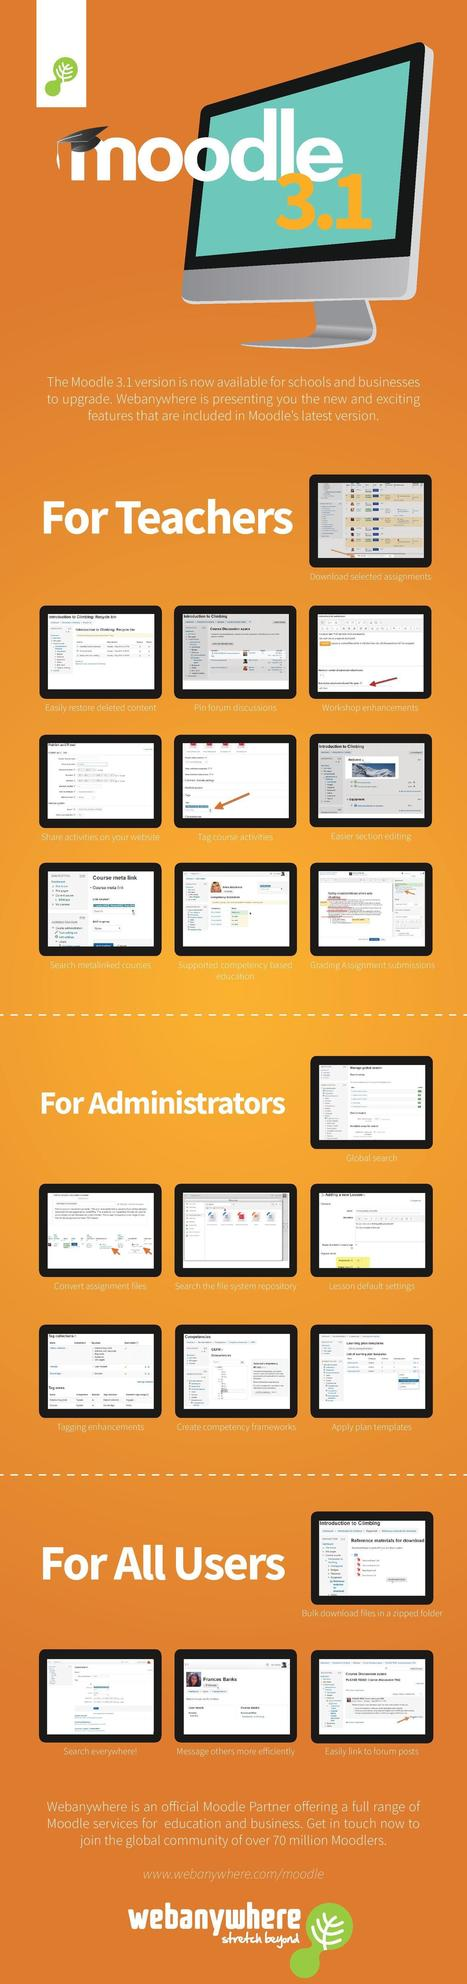 Moodle 3.1 New Features Infographic | eLearning related topics | Scoop.it